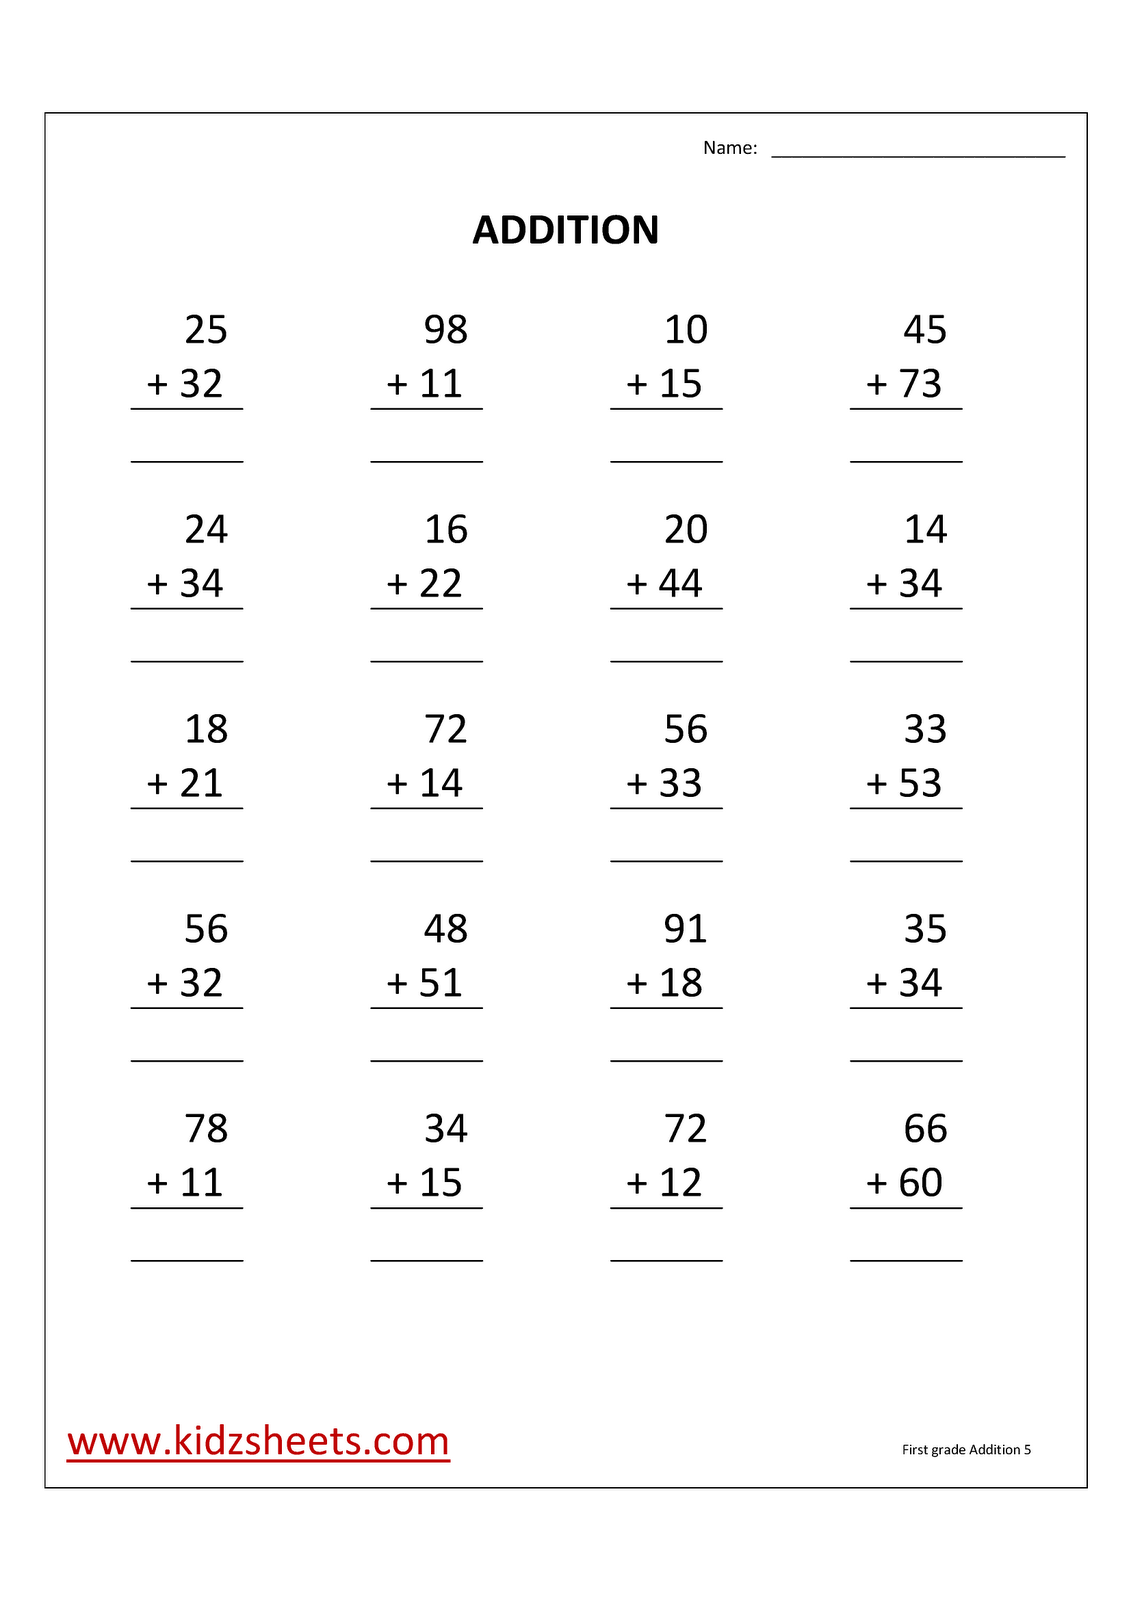 Worksheet Addition Worksheets Grade 4 addition worksheets grade 5 memarchoapraga